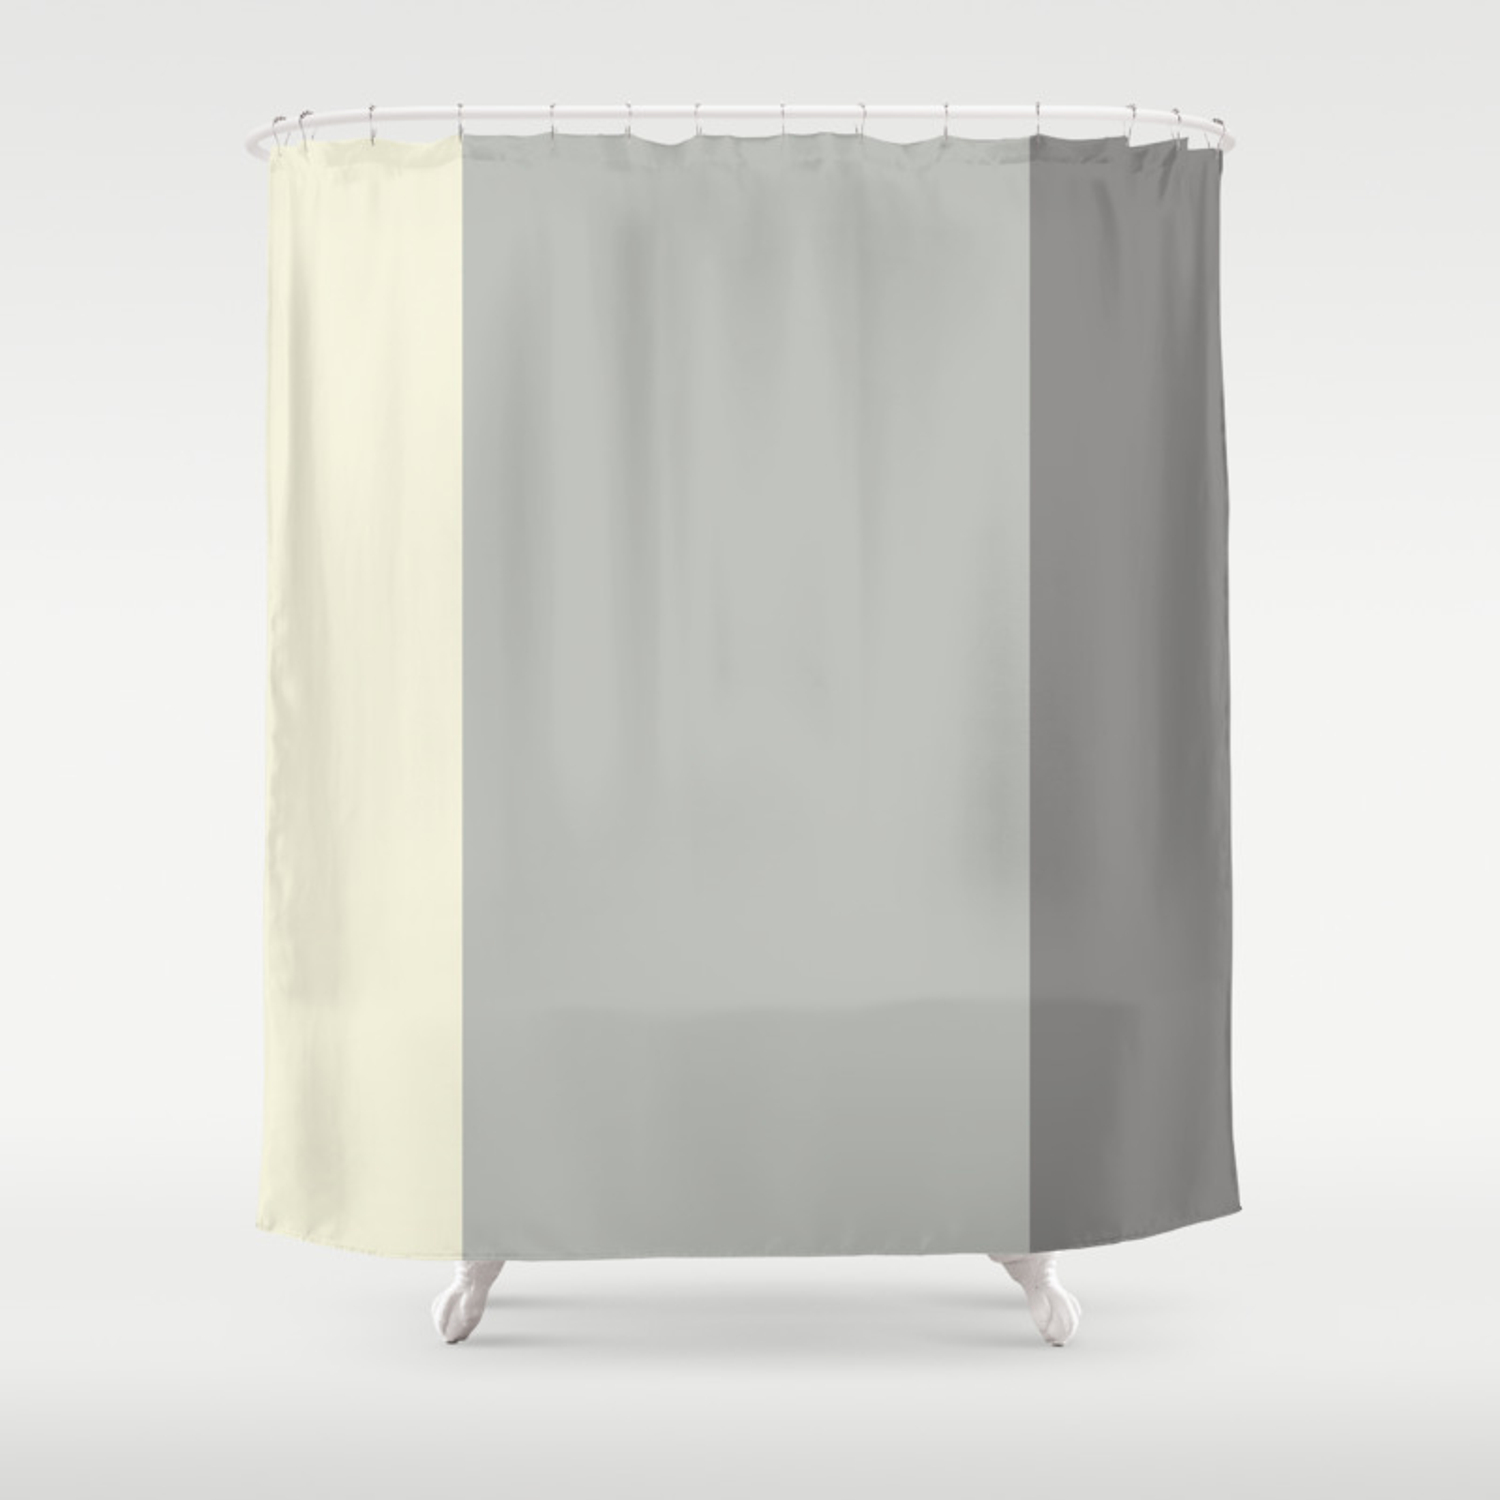 Benjamin Moore 2019 Coy Metropolitan Lemon Chiffon And Cinder Dark Gray Bold Vertical Stripes Shower Curtain